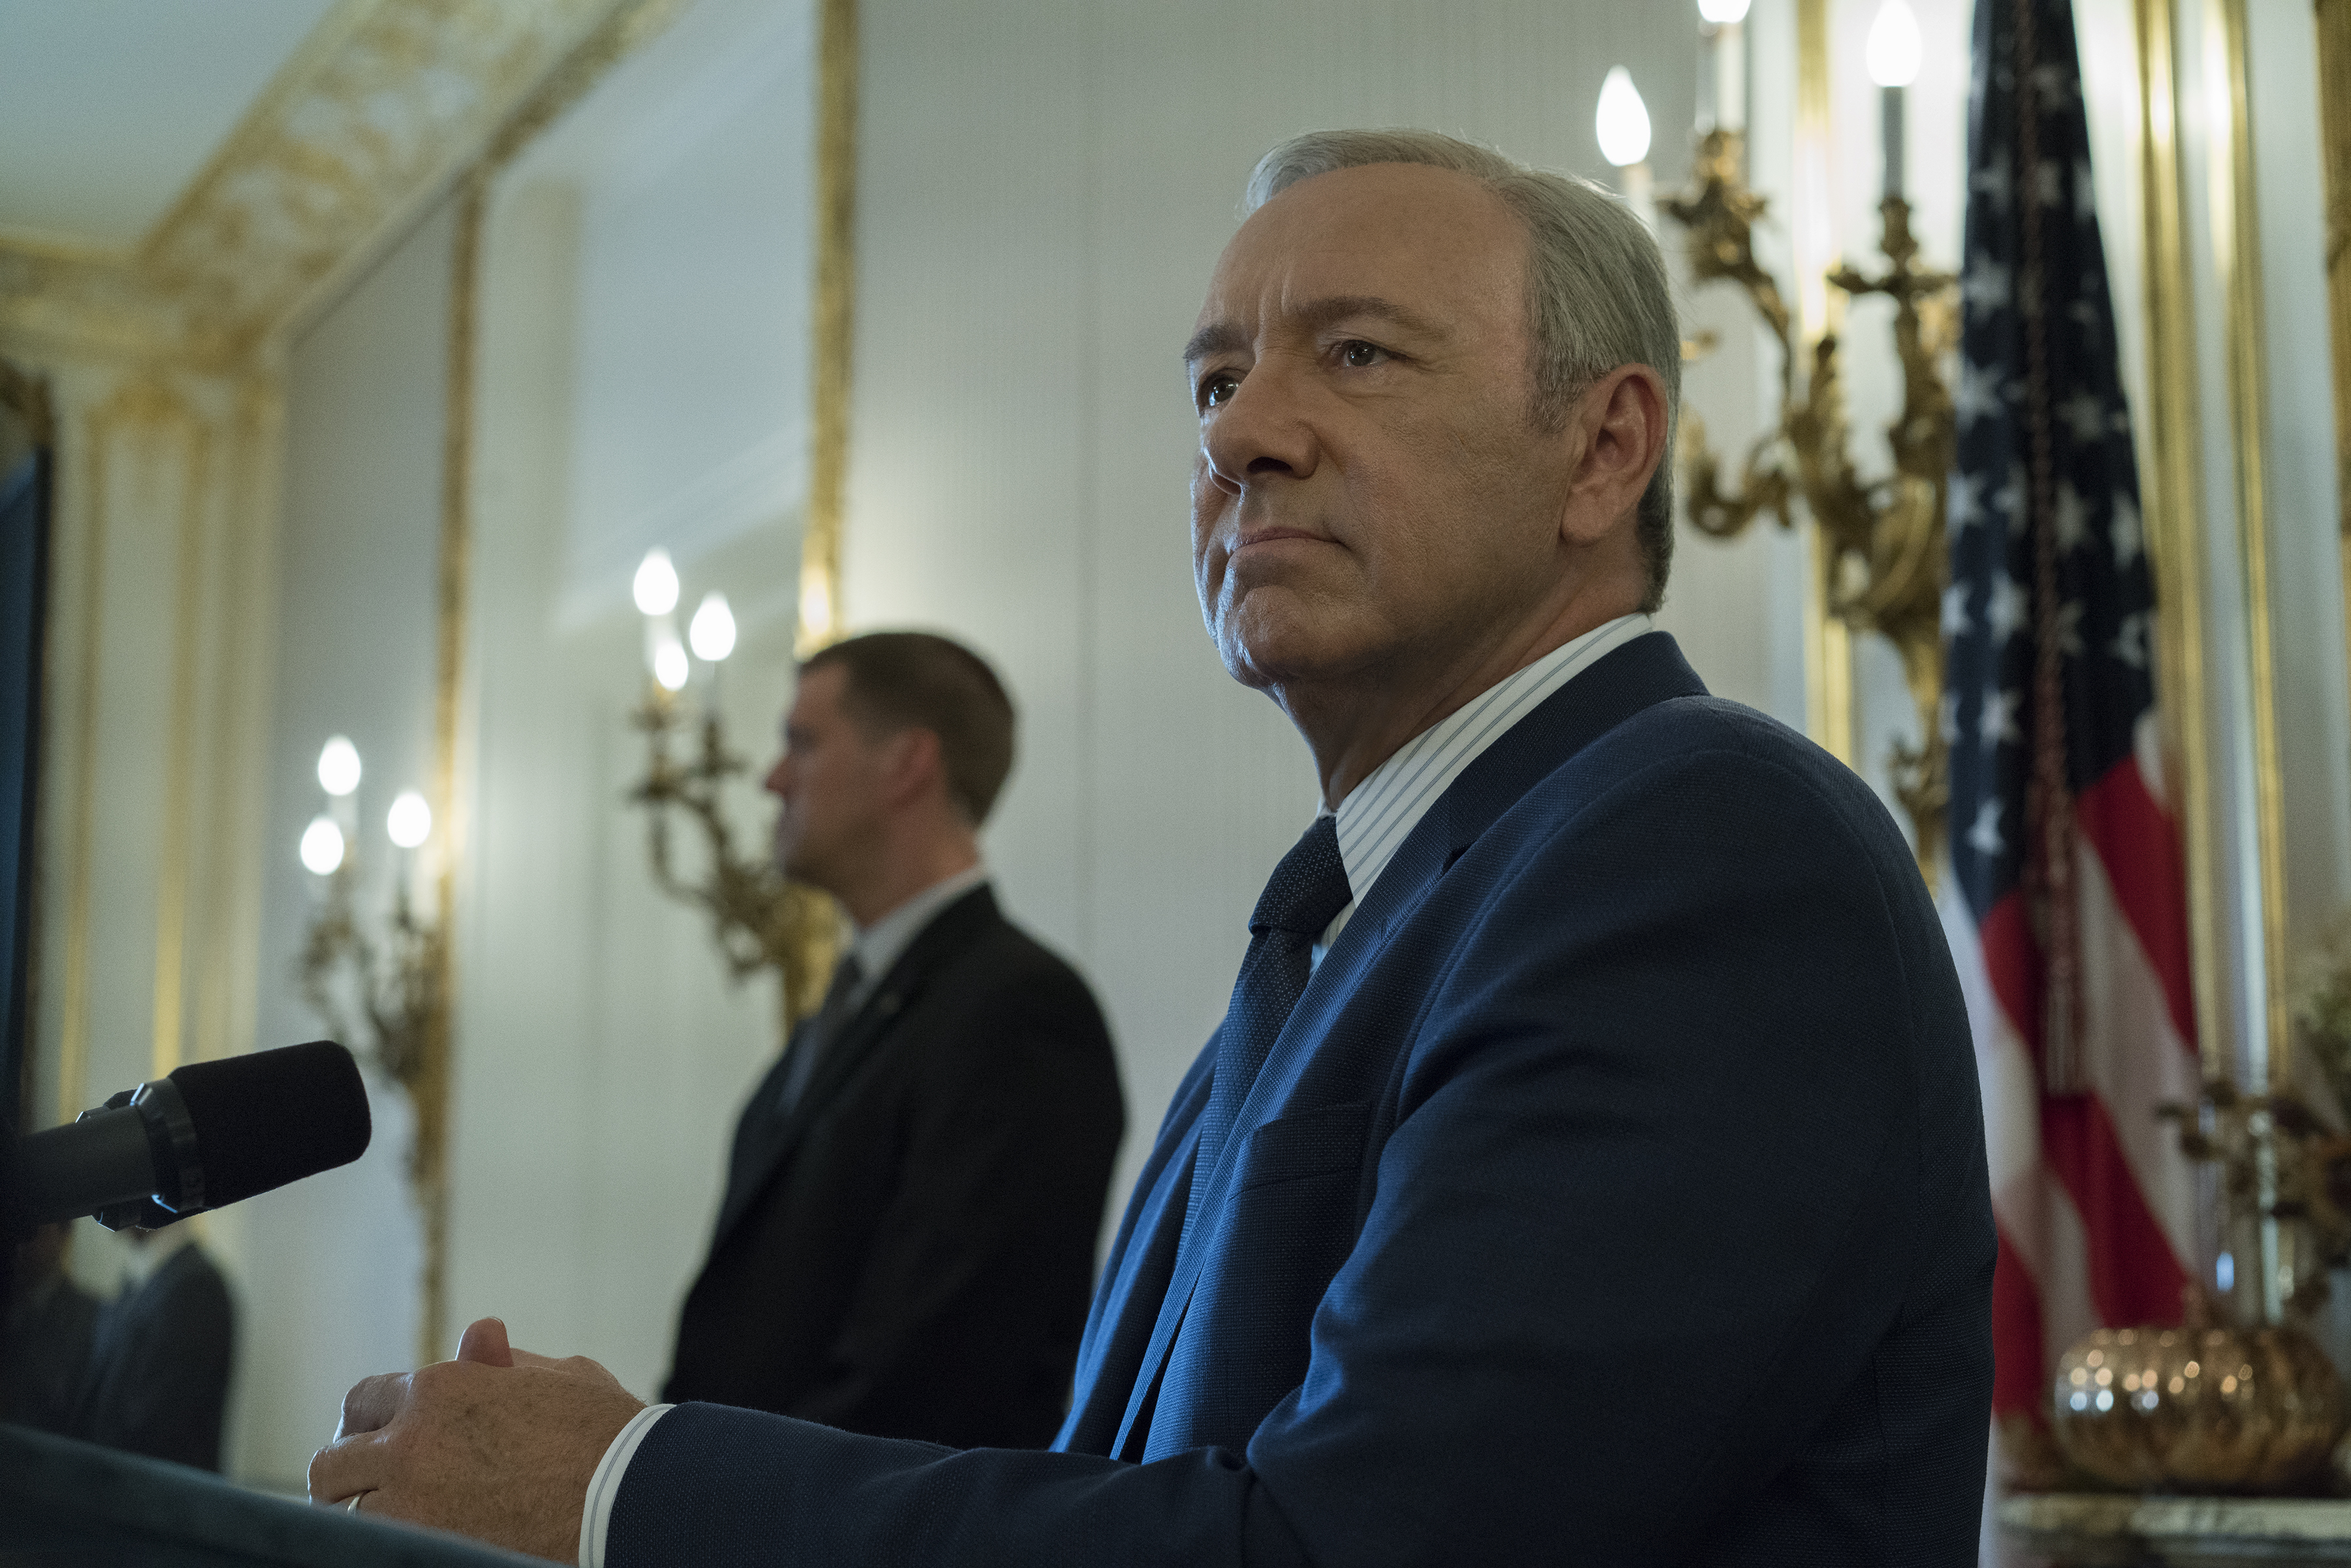 Maryland shooting puts 'House of Cards' set on lockdown